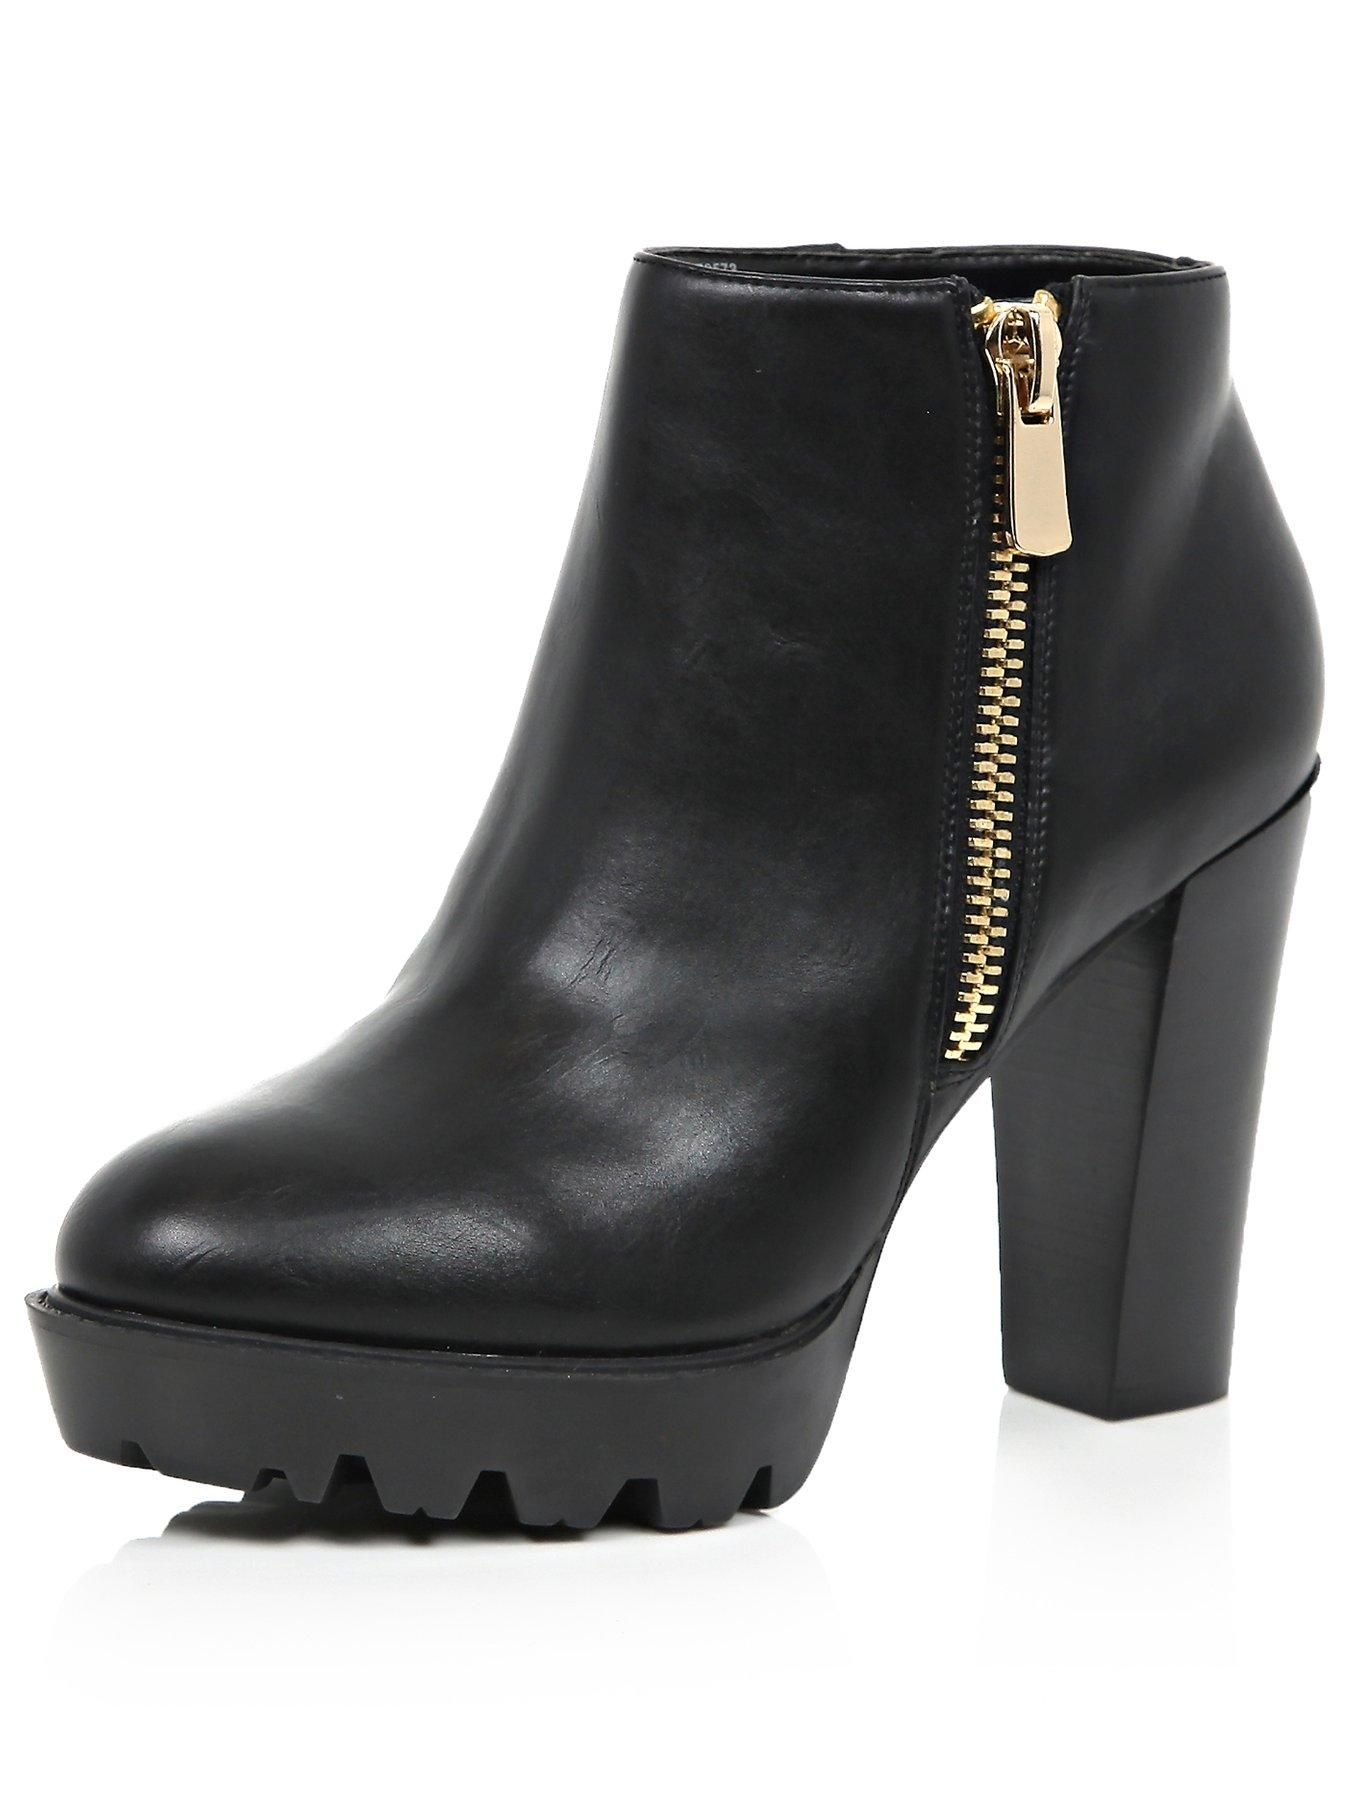 e8f7e6c82f5ed River Island Heeled Cleated Sole Ankle Boots The classic Chelsea boot gets  a luxe refresh this season